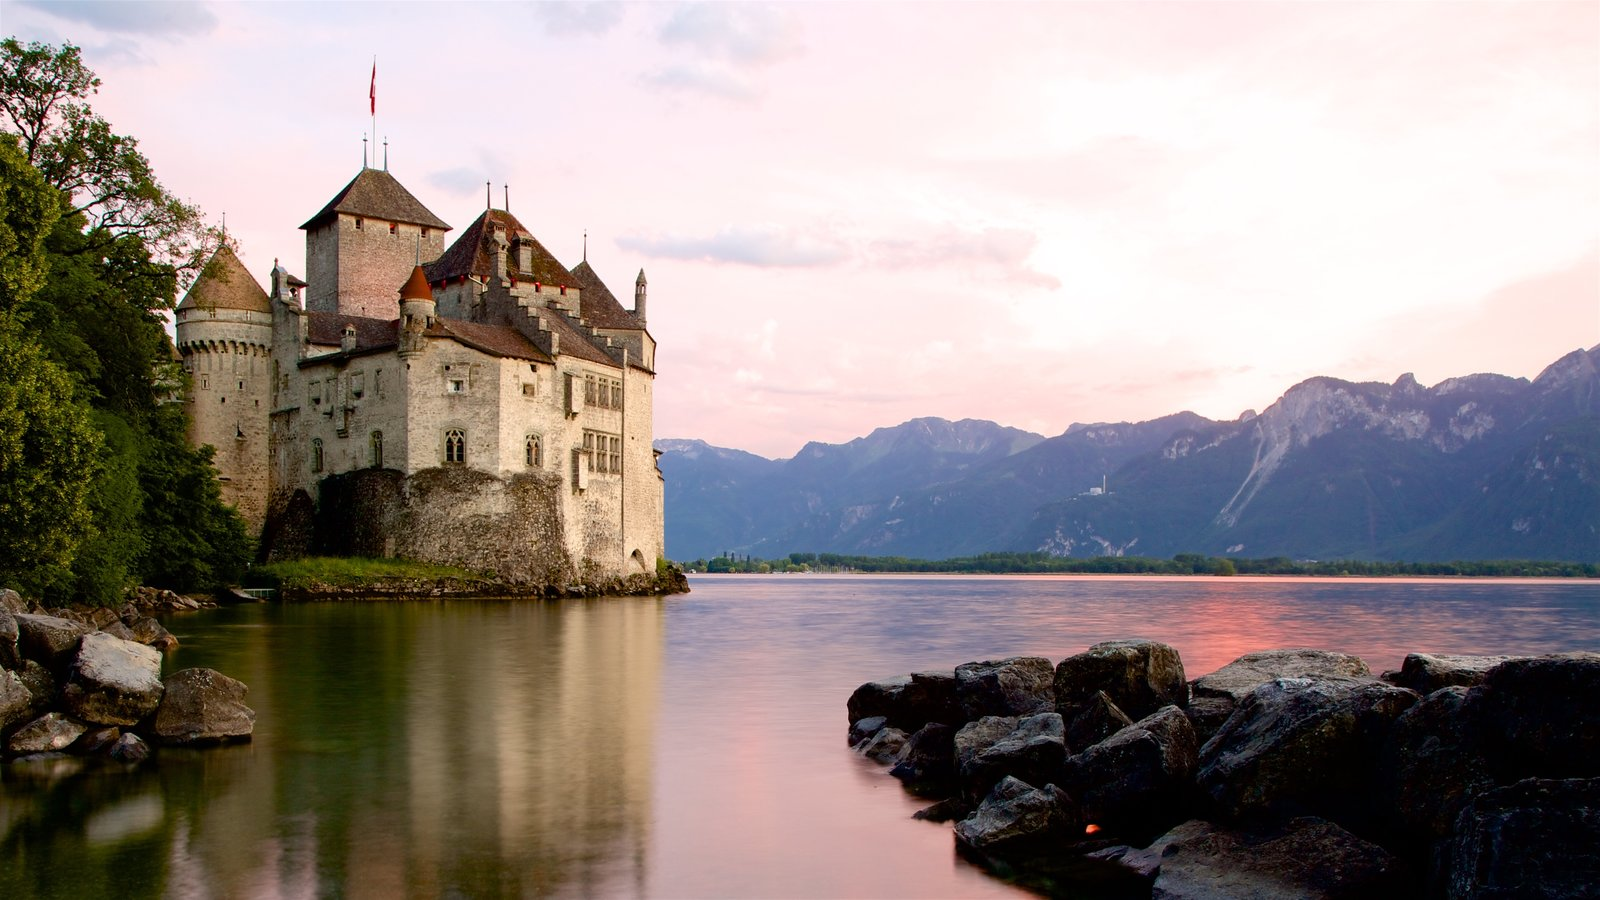 Chateau de Chillon showing a lake or waterhole, chateau or palace and heritage architecture